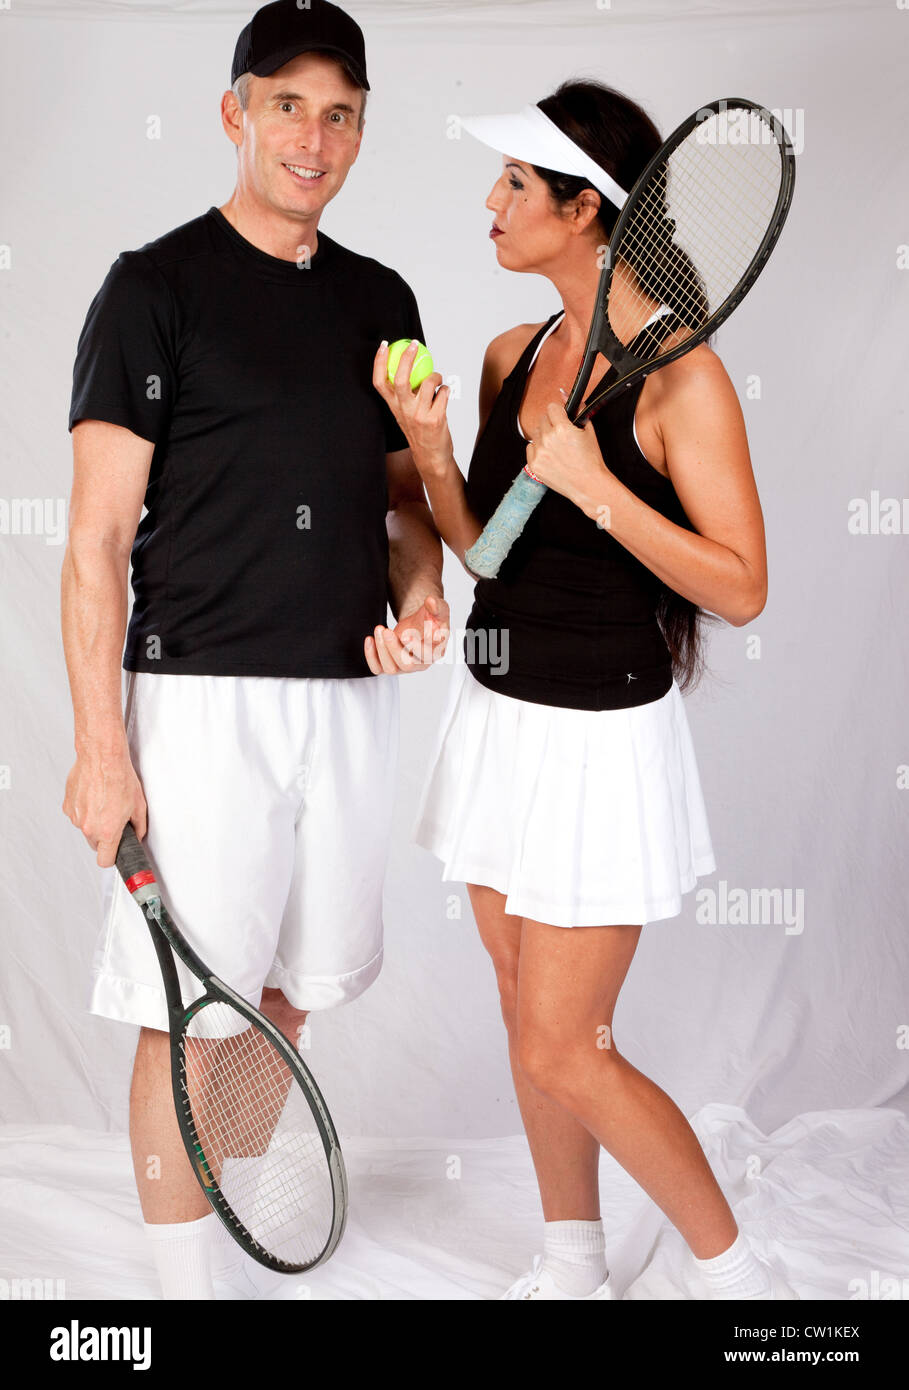 Cute Couple In Tennis Outfits Playing With Their Balls And Rackets Stock Photo Alamy